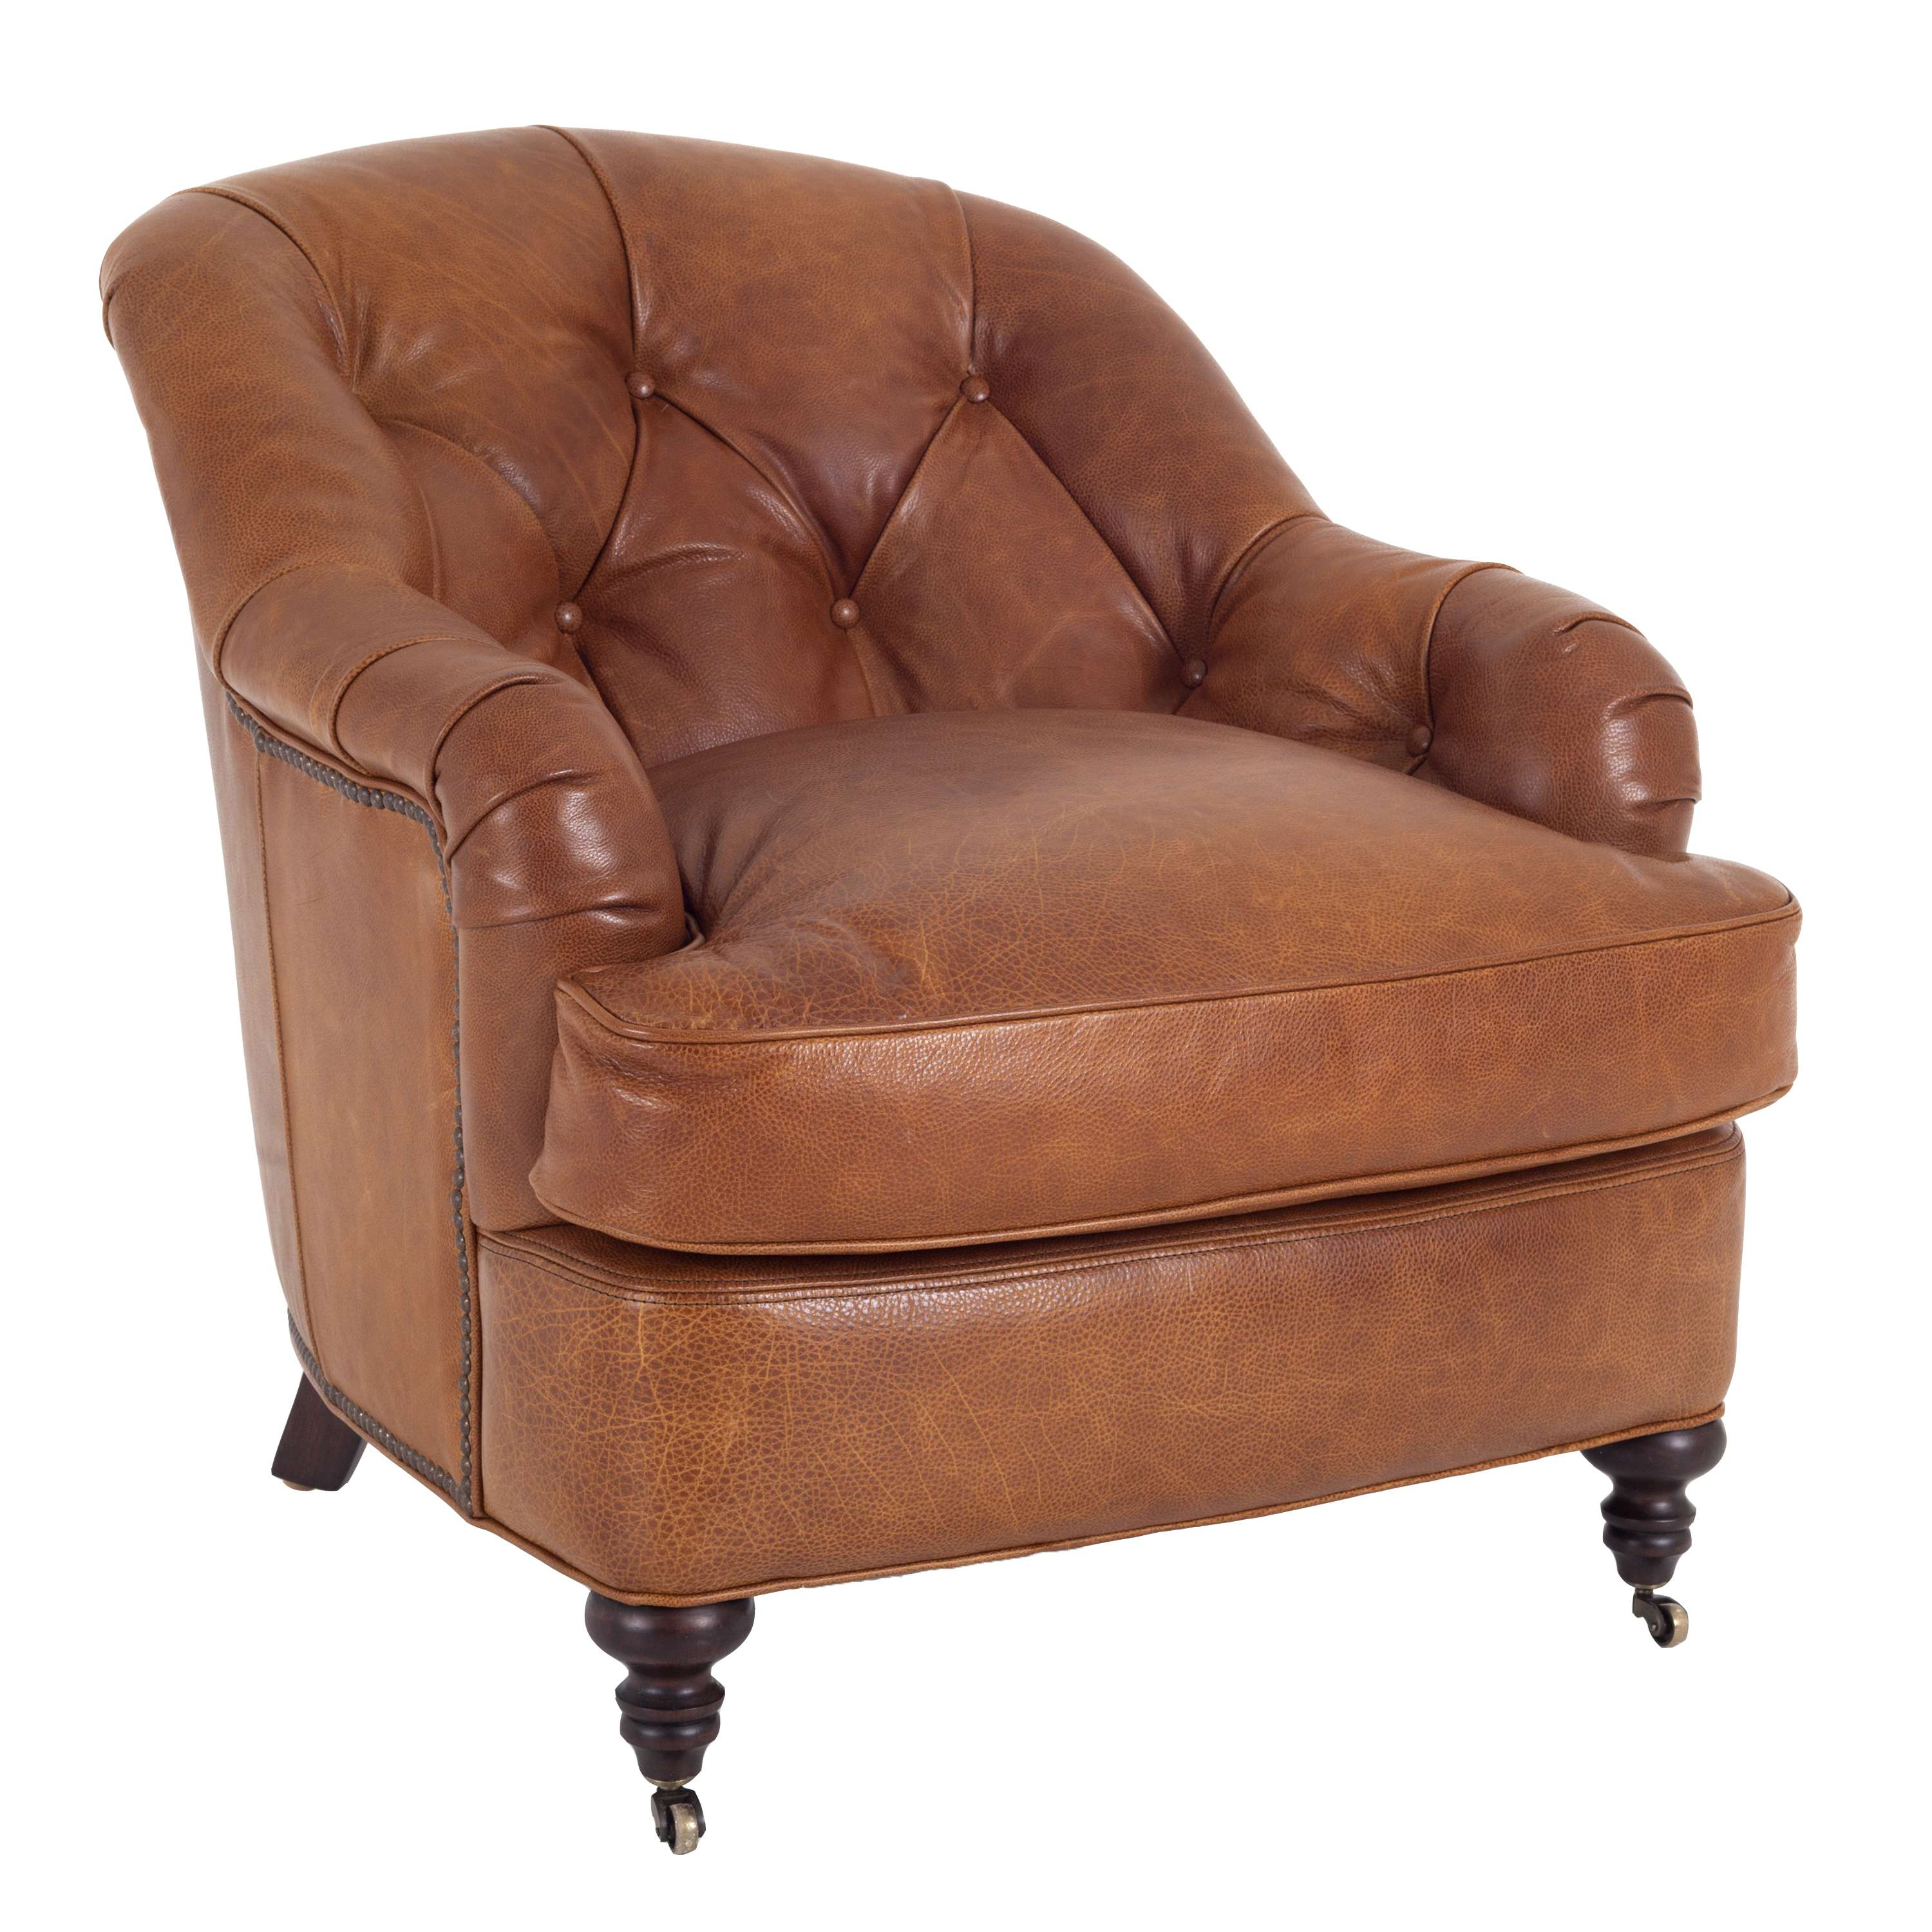 chair covers and more norfolk child care chairs madrid chestnut leather furniture